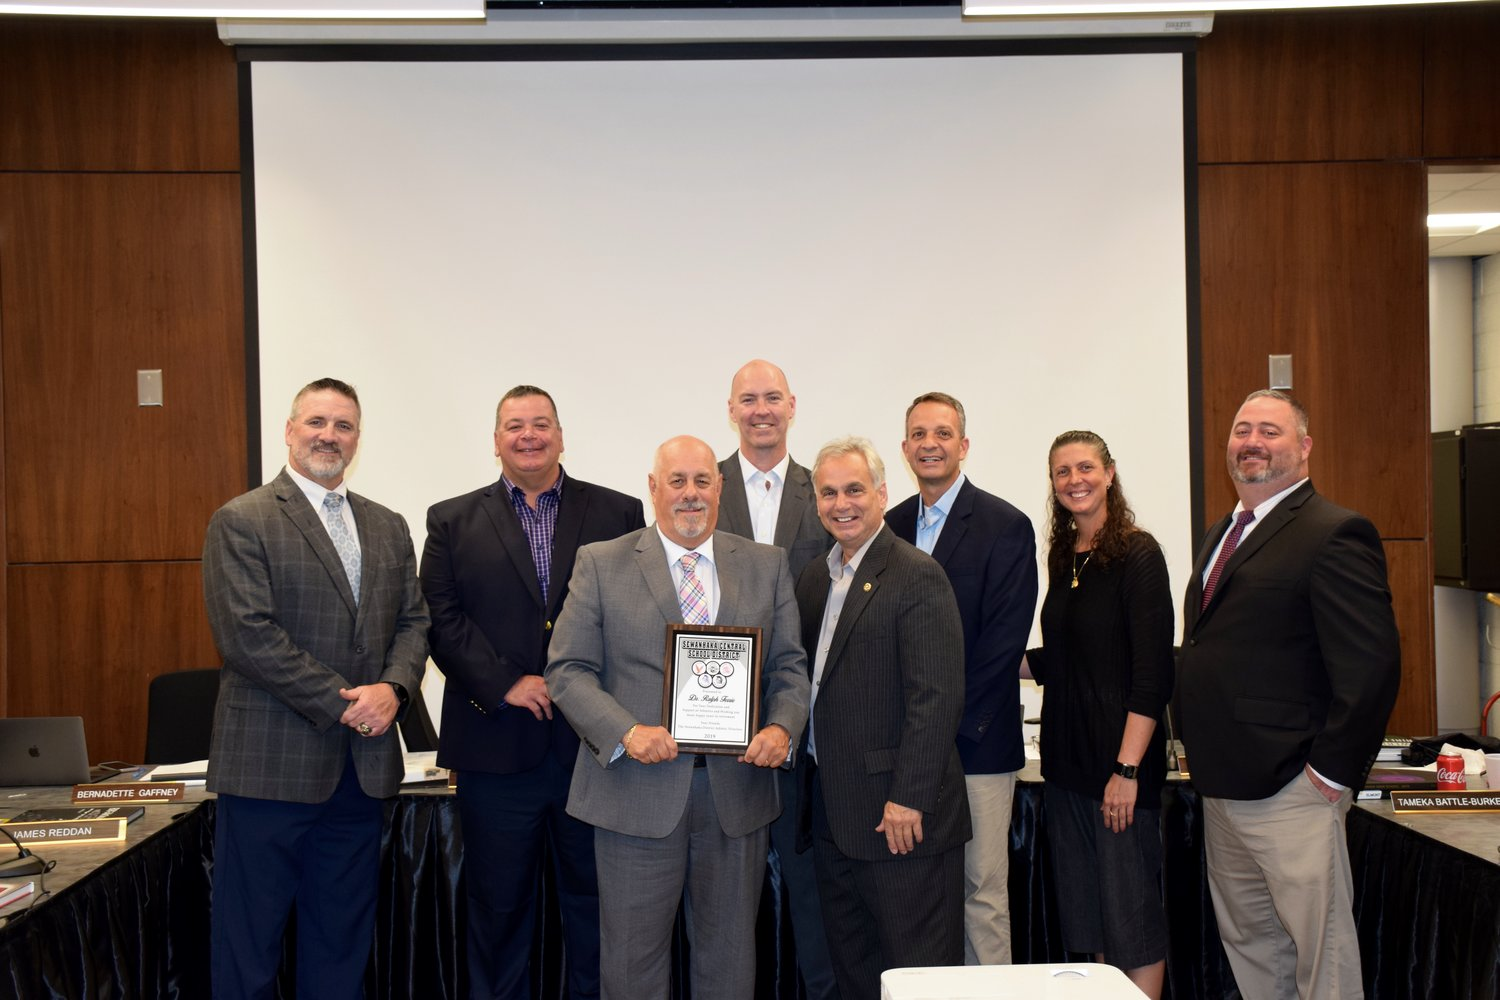 Sewanhaka Central High School District officials and athletic directors bid farewell to retiring Superintendent Ralph Ferrie, holding the plague, on June 18.